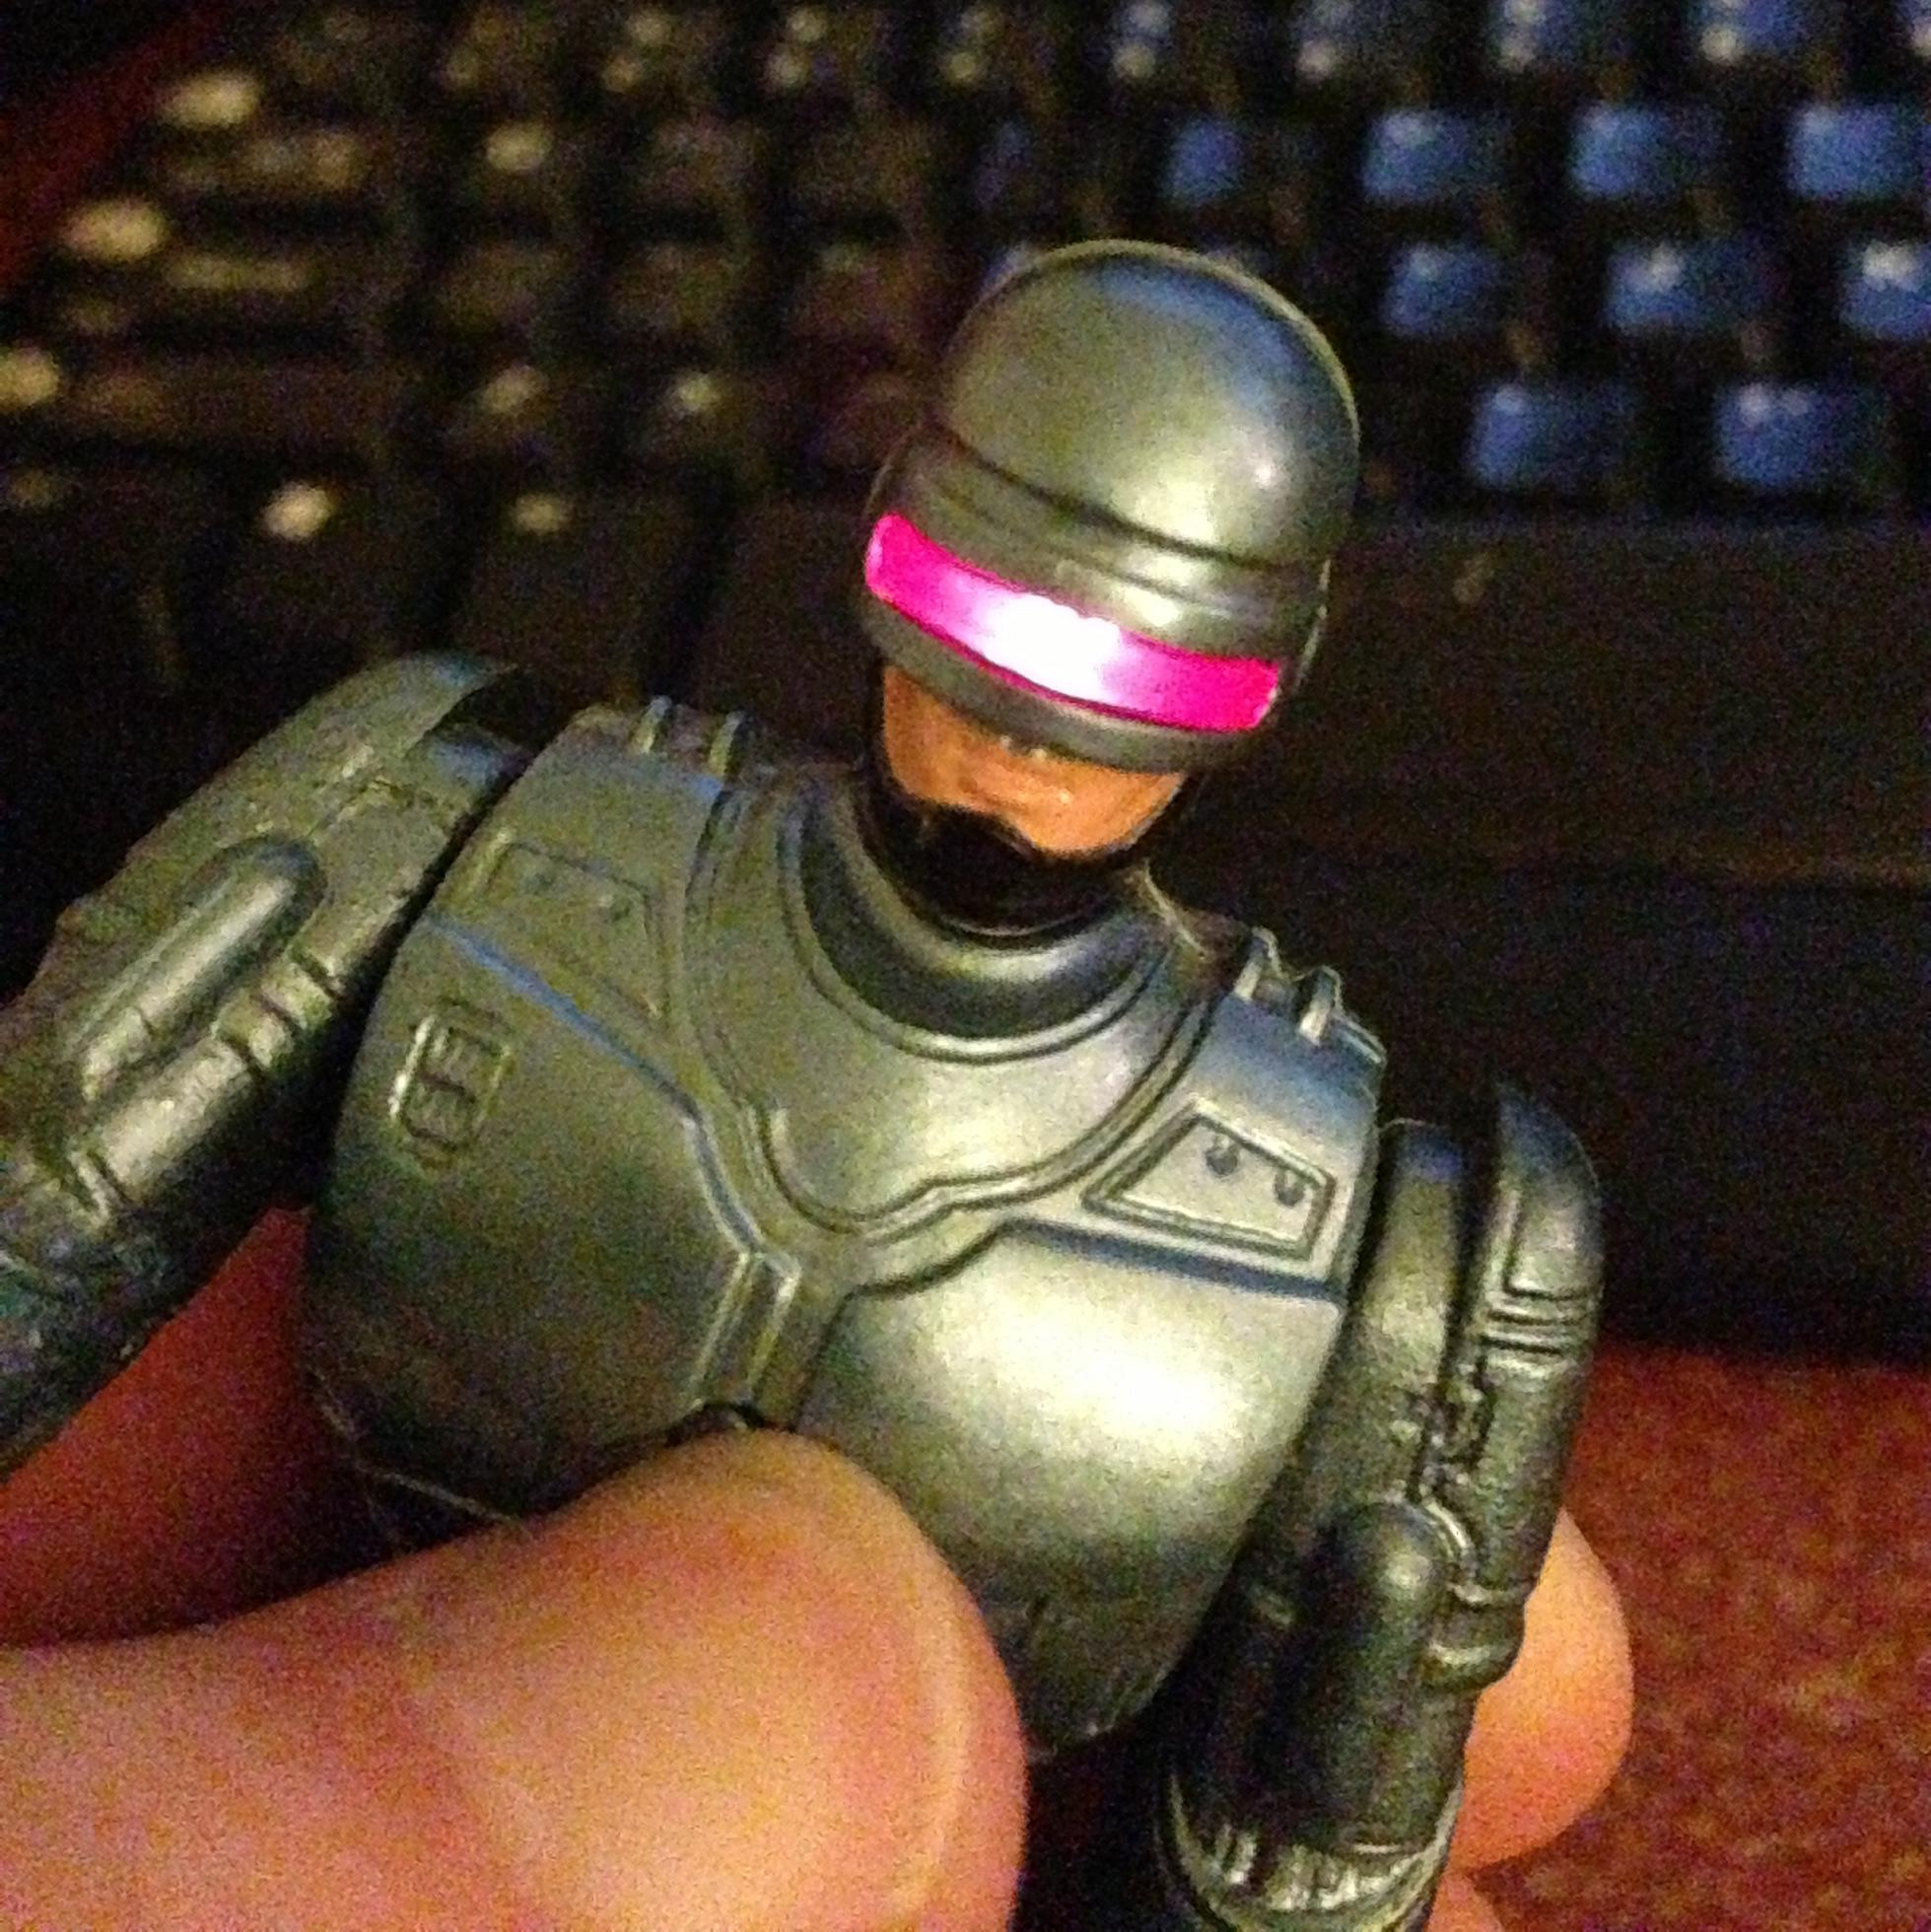 robocop with machine gun sound and light up visor